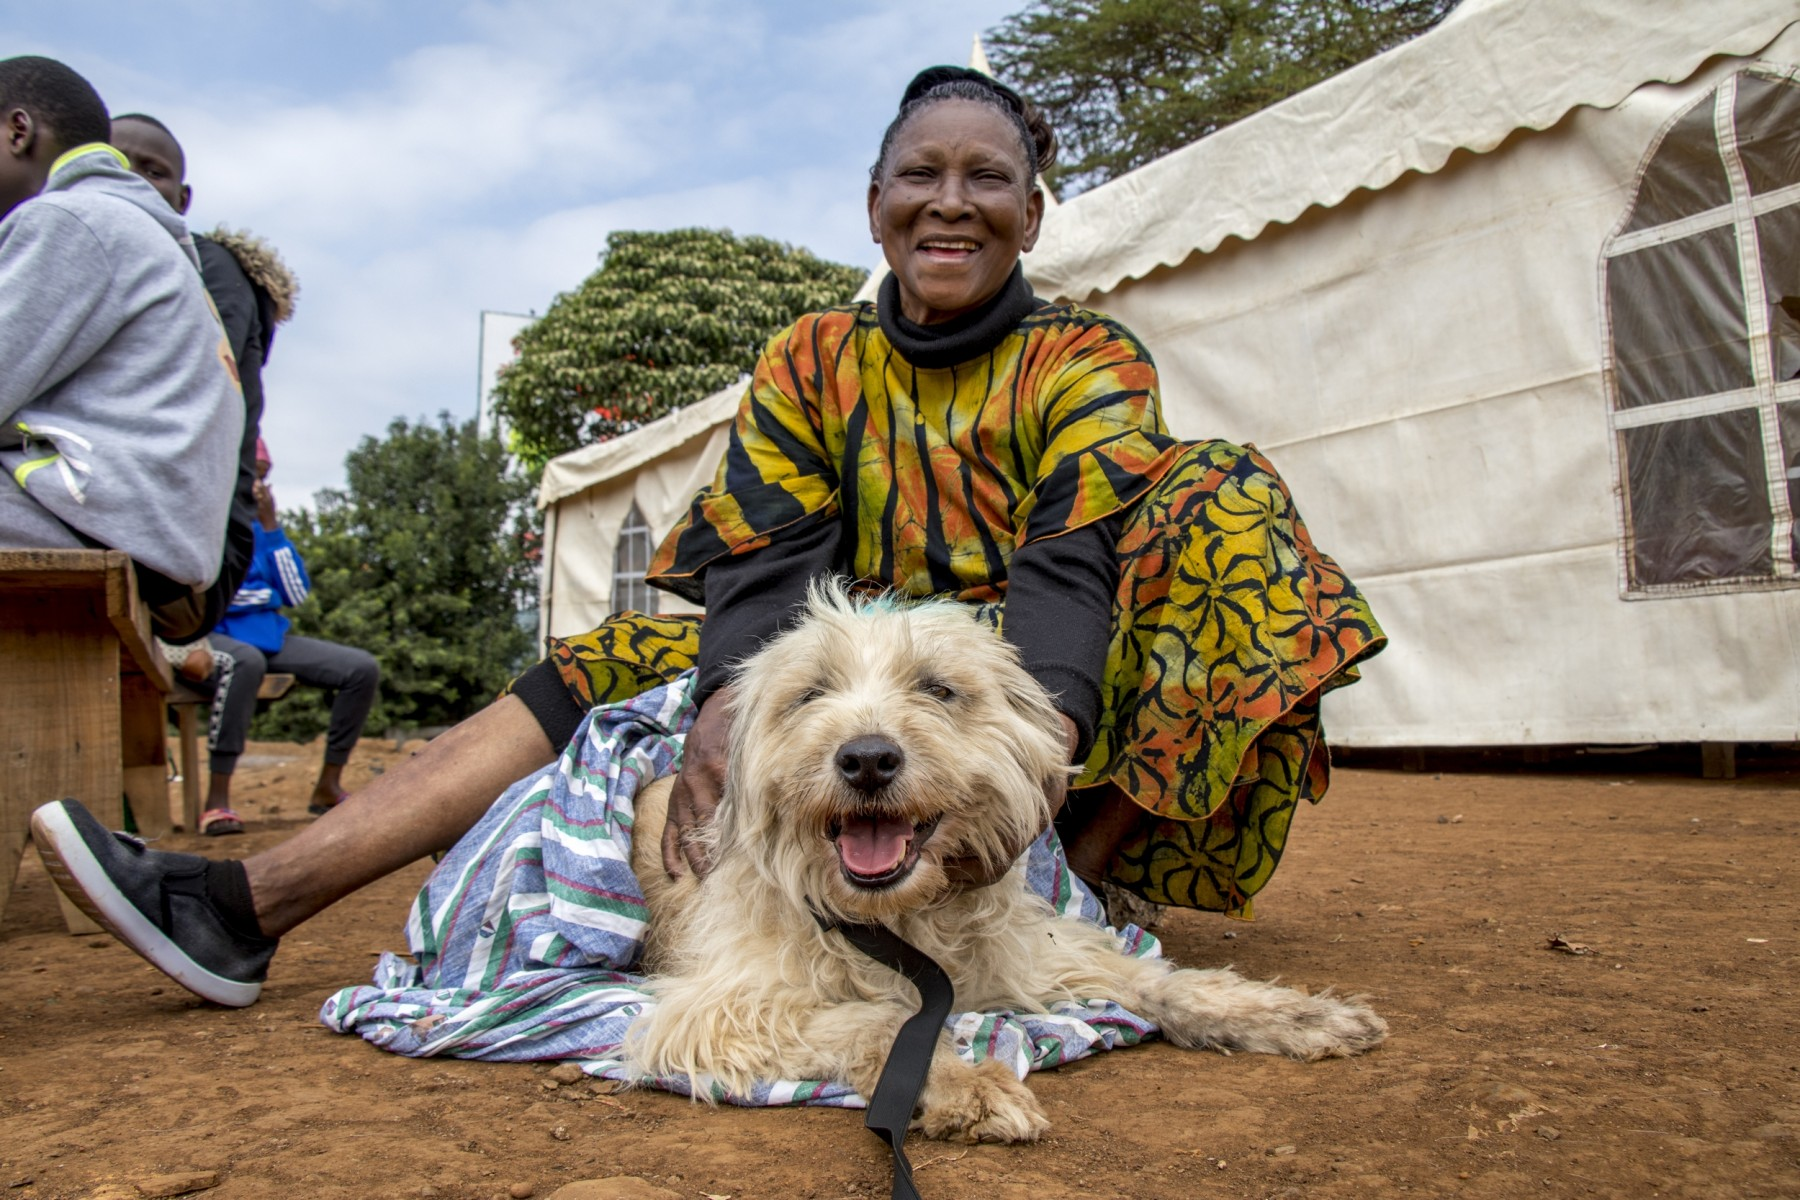 Dog sitting with its owner at rabies vaccination drive in Kenya - World Animal Protection